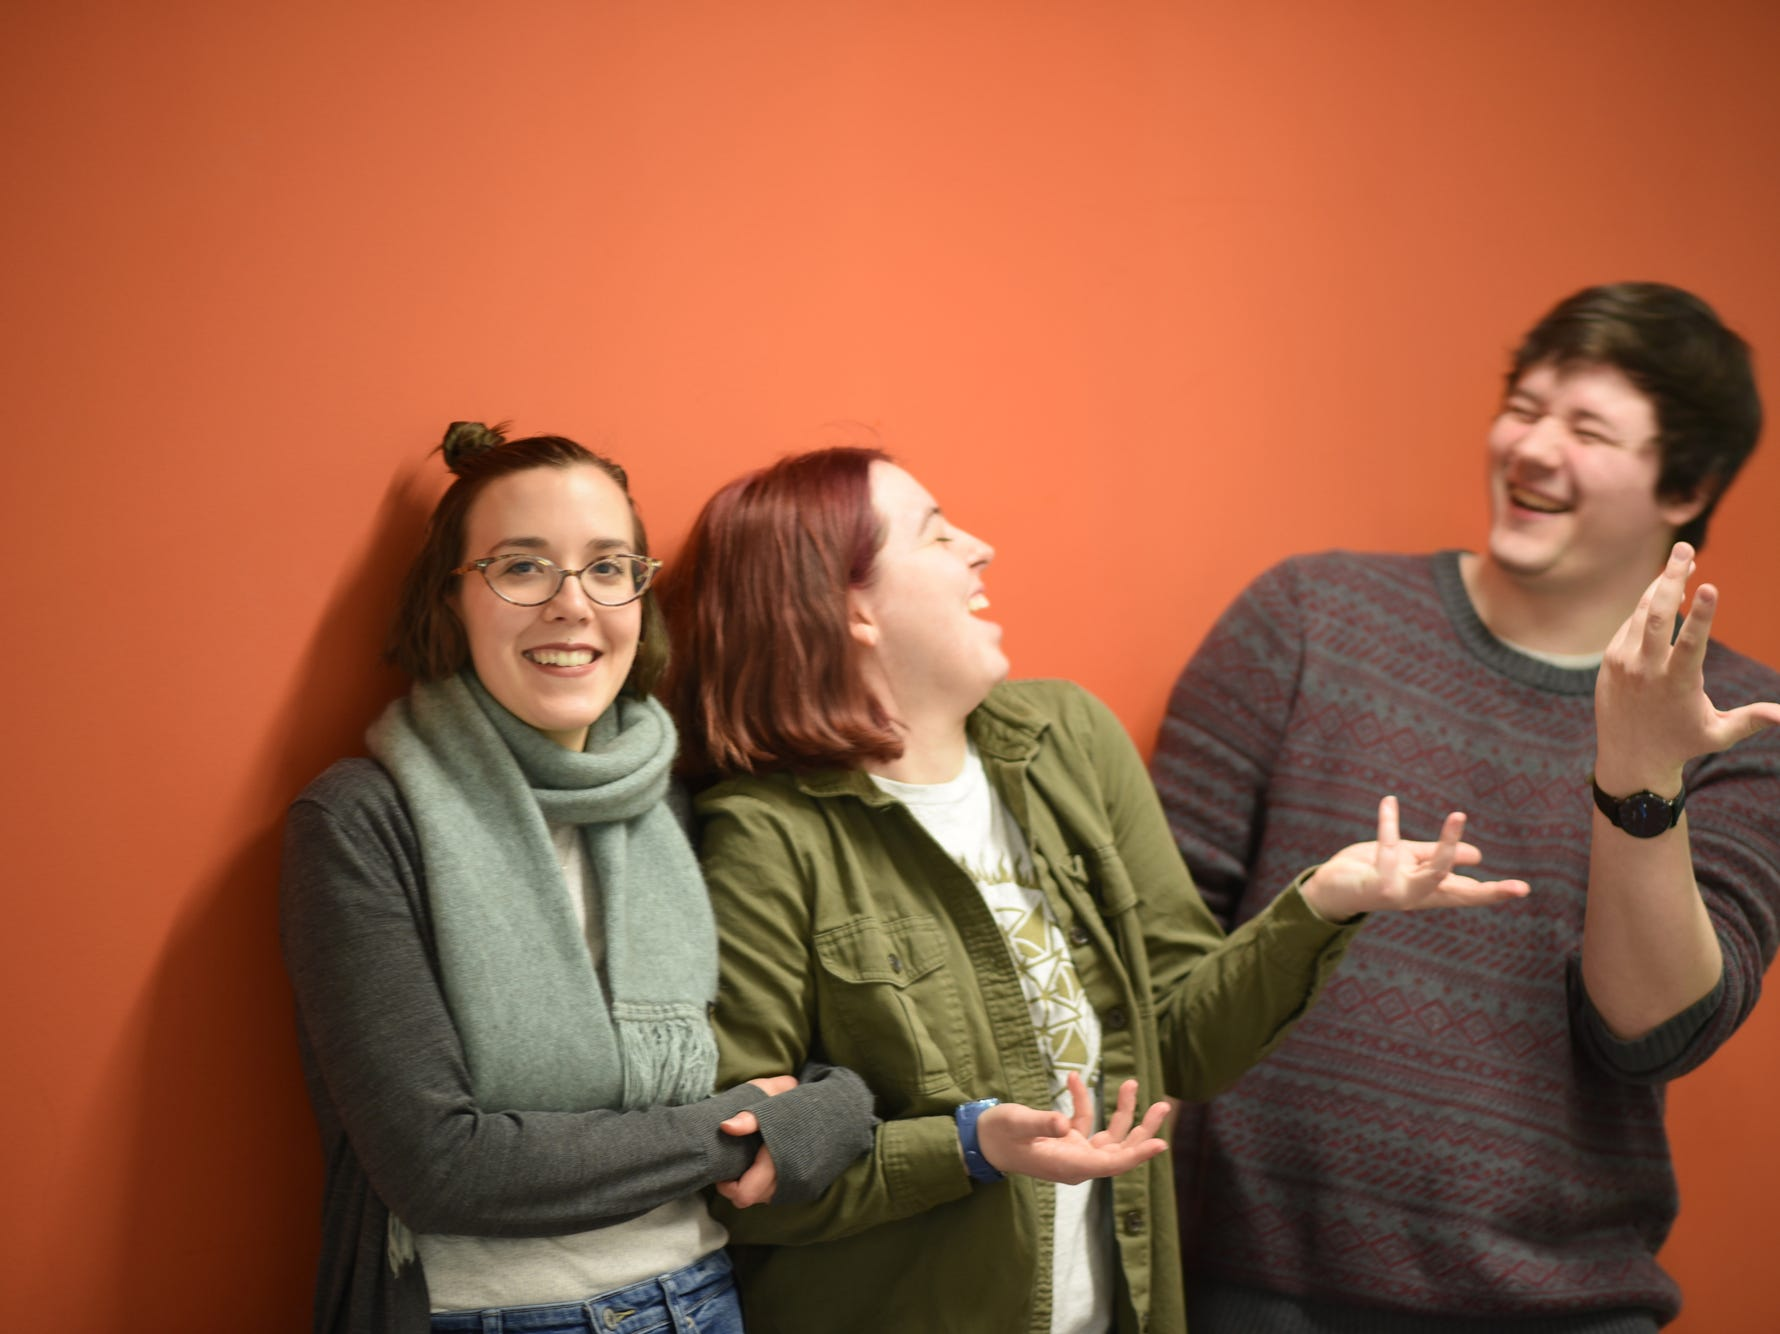 From left to right, Champlain College seniors Amila Nuhodzic, Jennifer Carlin and Brennan Howell, ham it up in the corridor of the Center for Communication & Creative Media on Maple Street in Burlington, March 5, 2019.